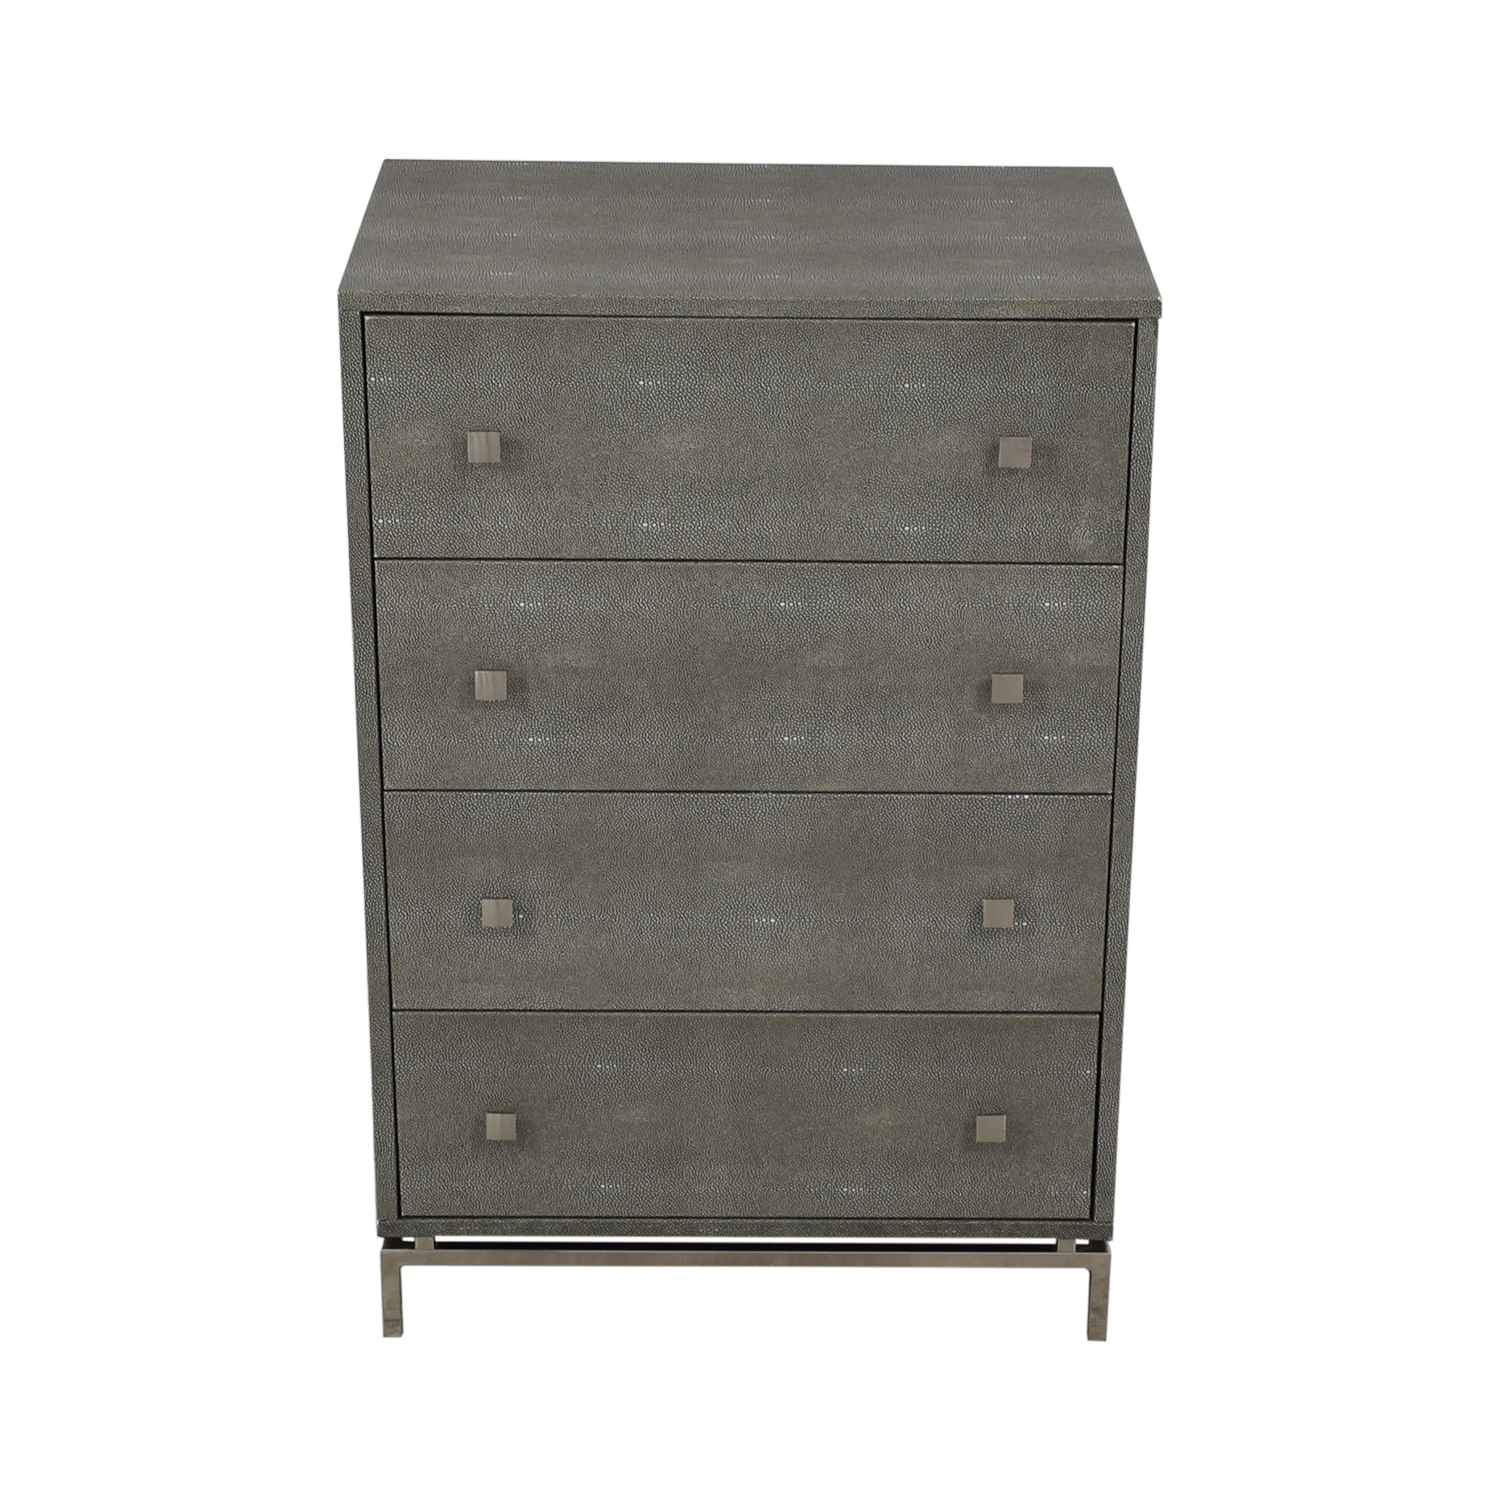 CB2 Shagreen Embossed Tall Chest sale